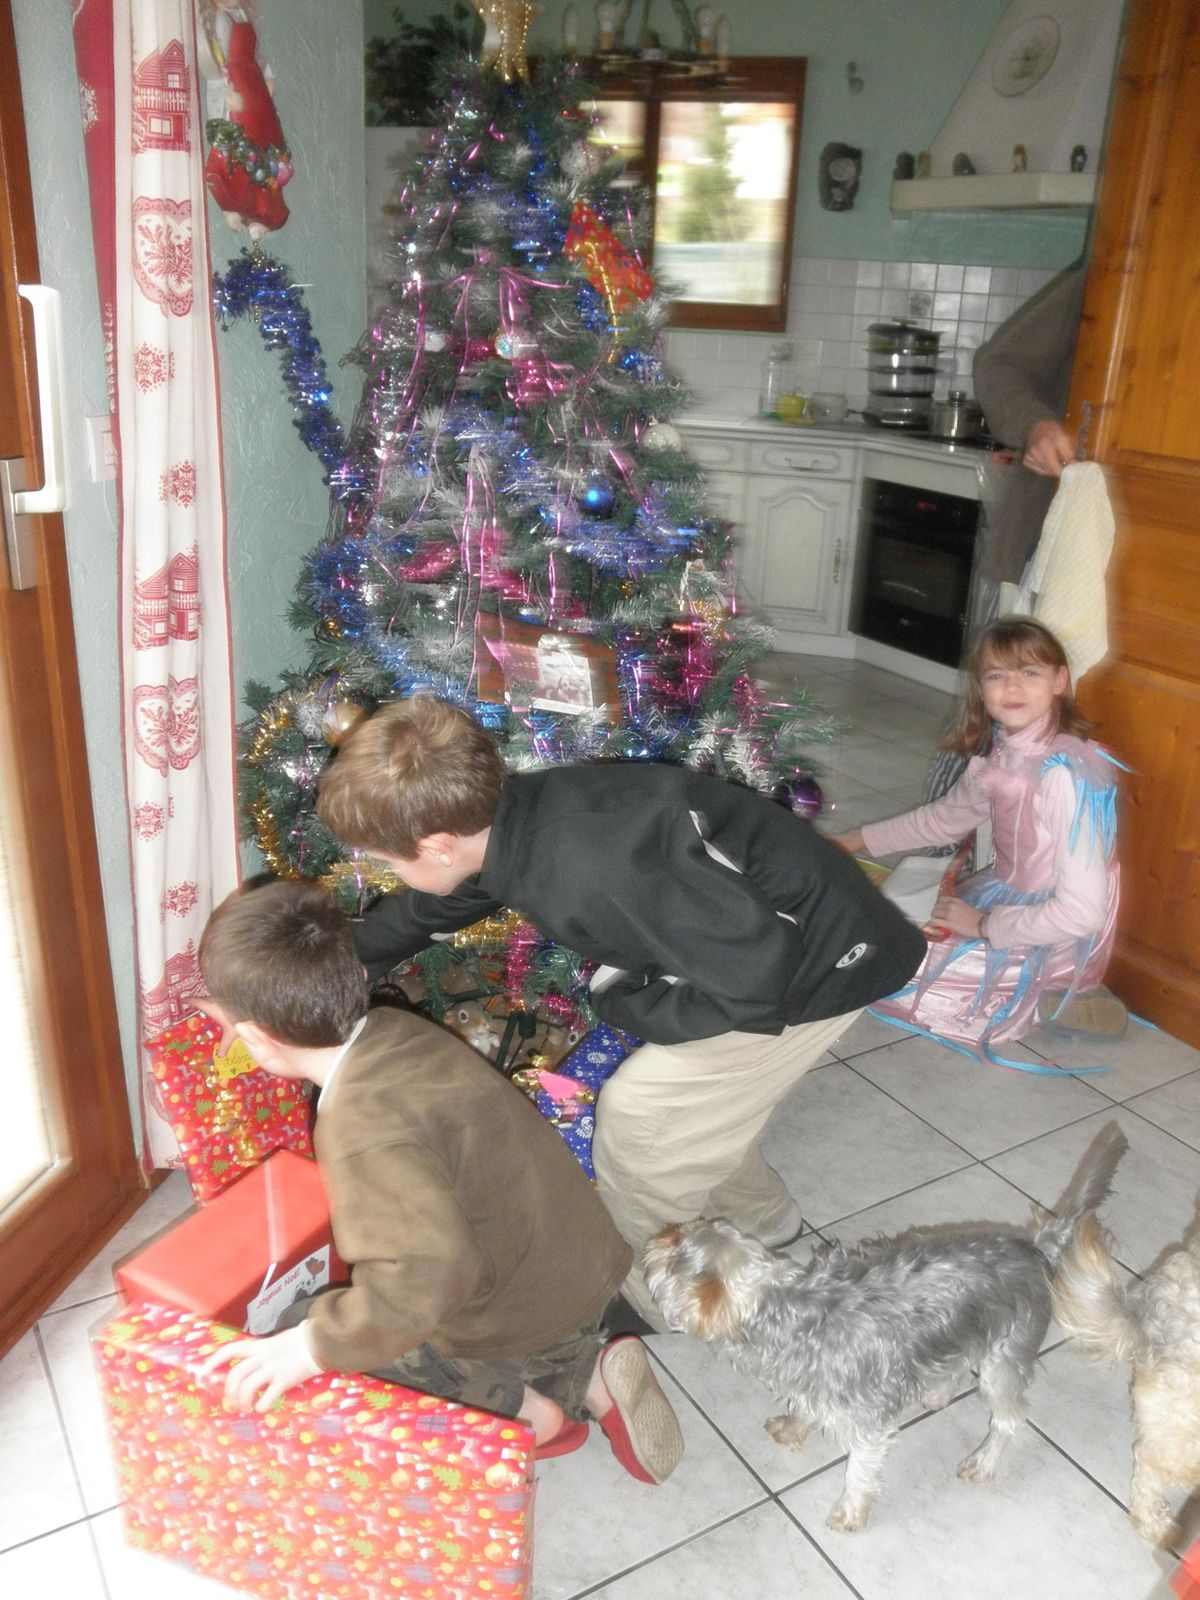 Then it's the family's turn to open the presents...